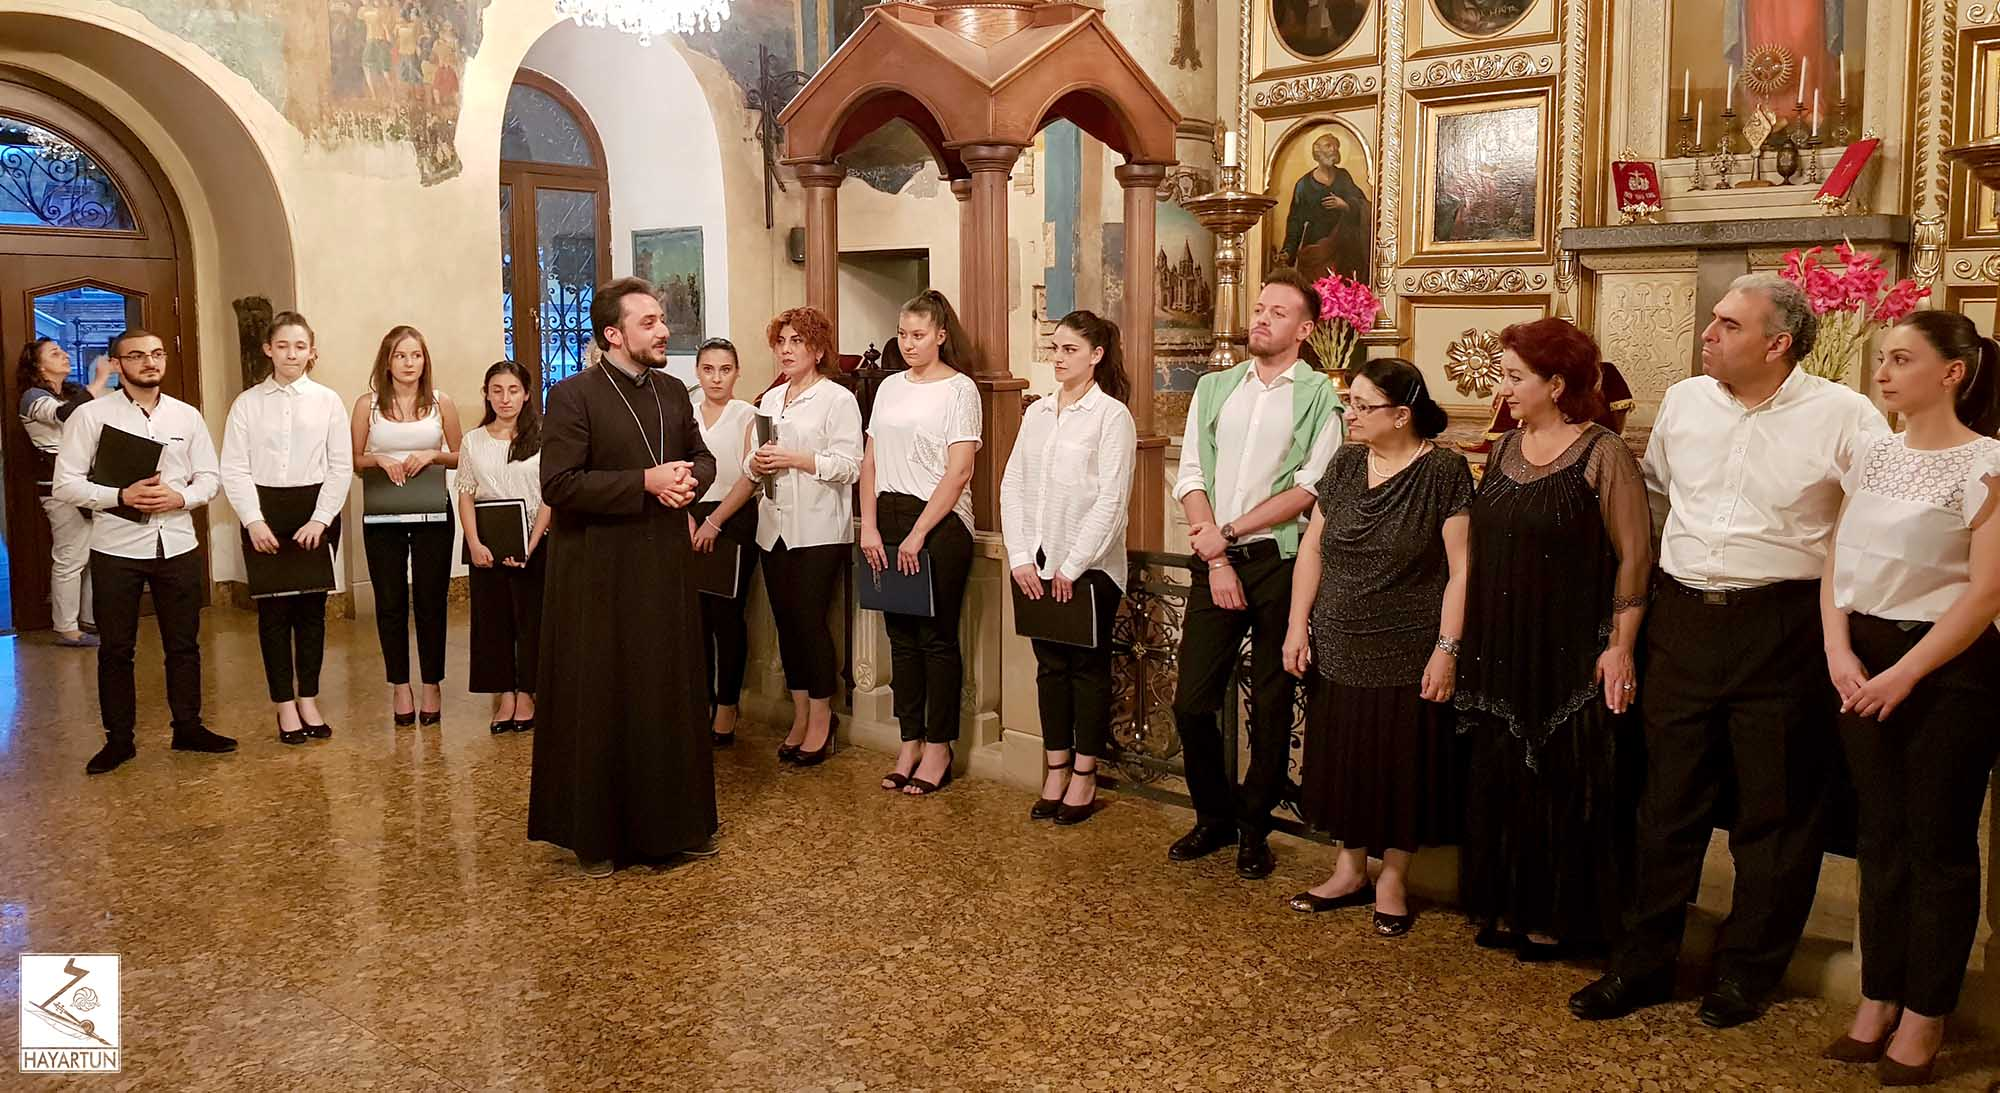 Concert of classical and spiritual music took place at the Cathedral of Saint George